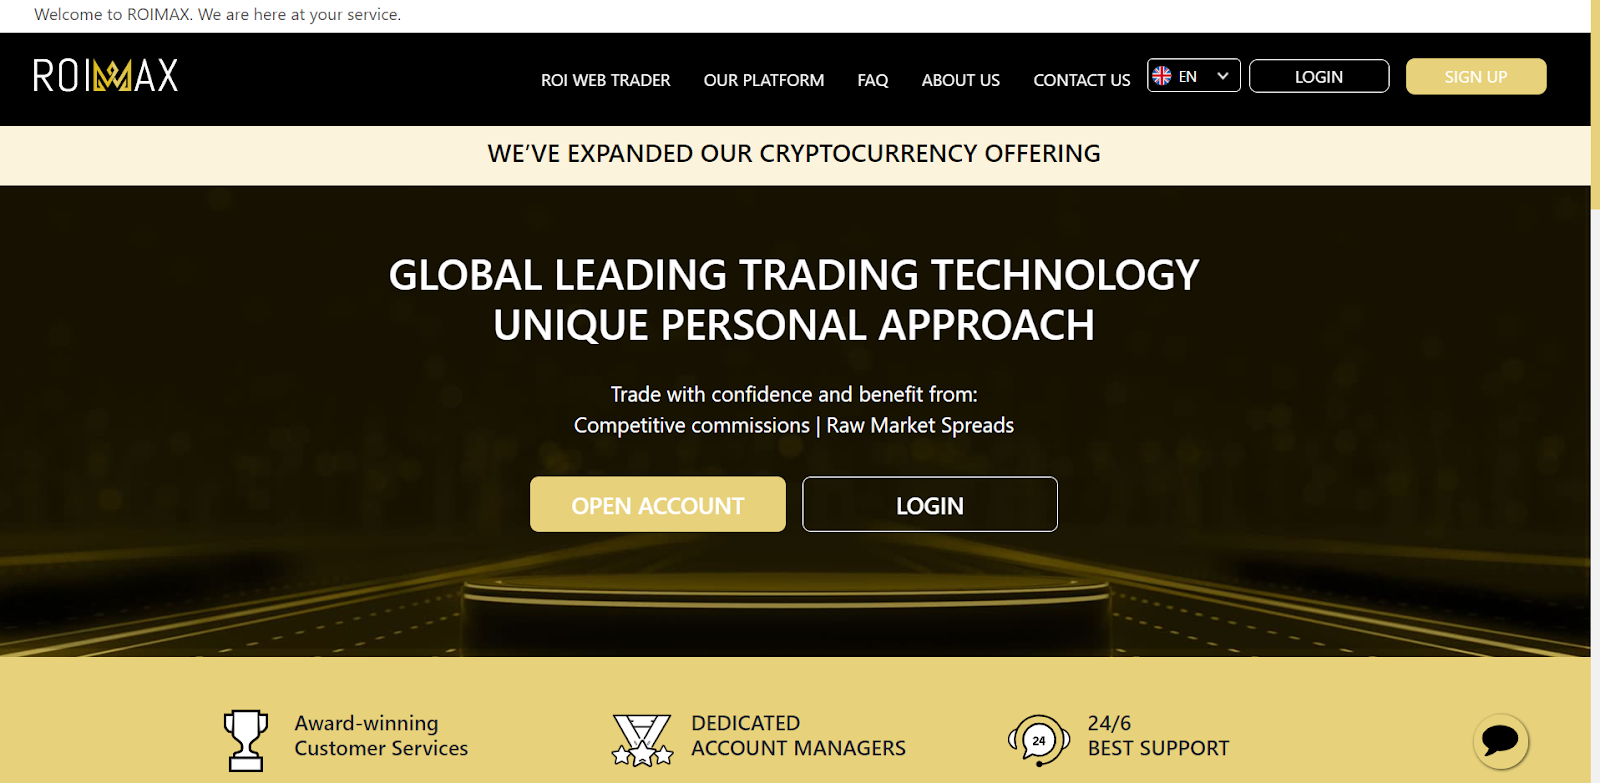 ROIMAX Cryptocurrency Trading Platform Review 2